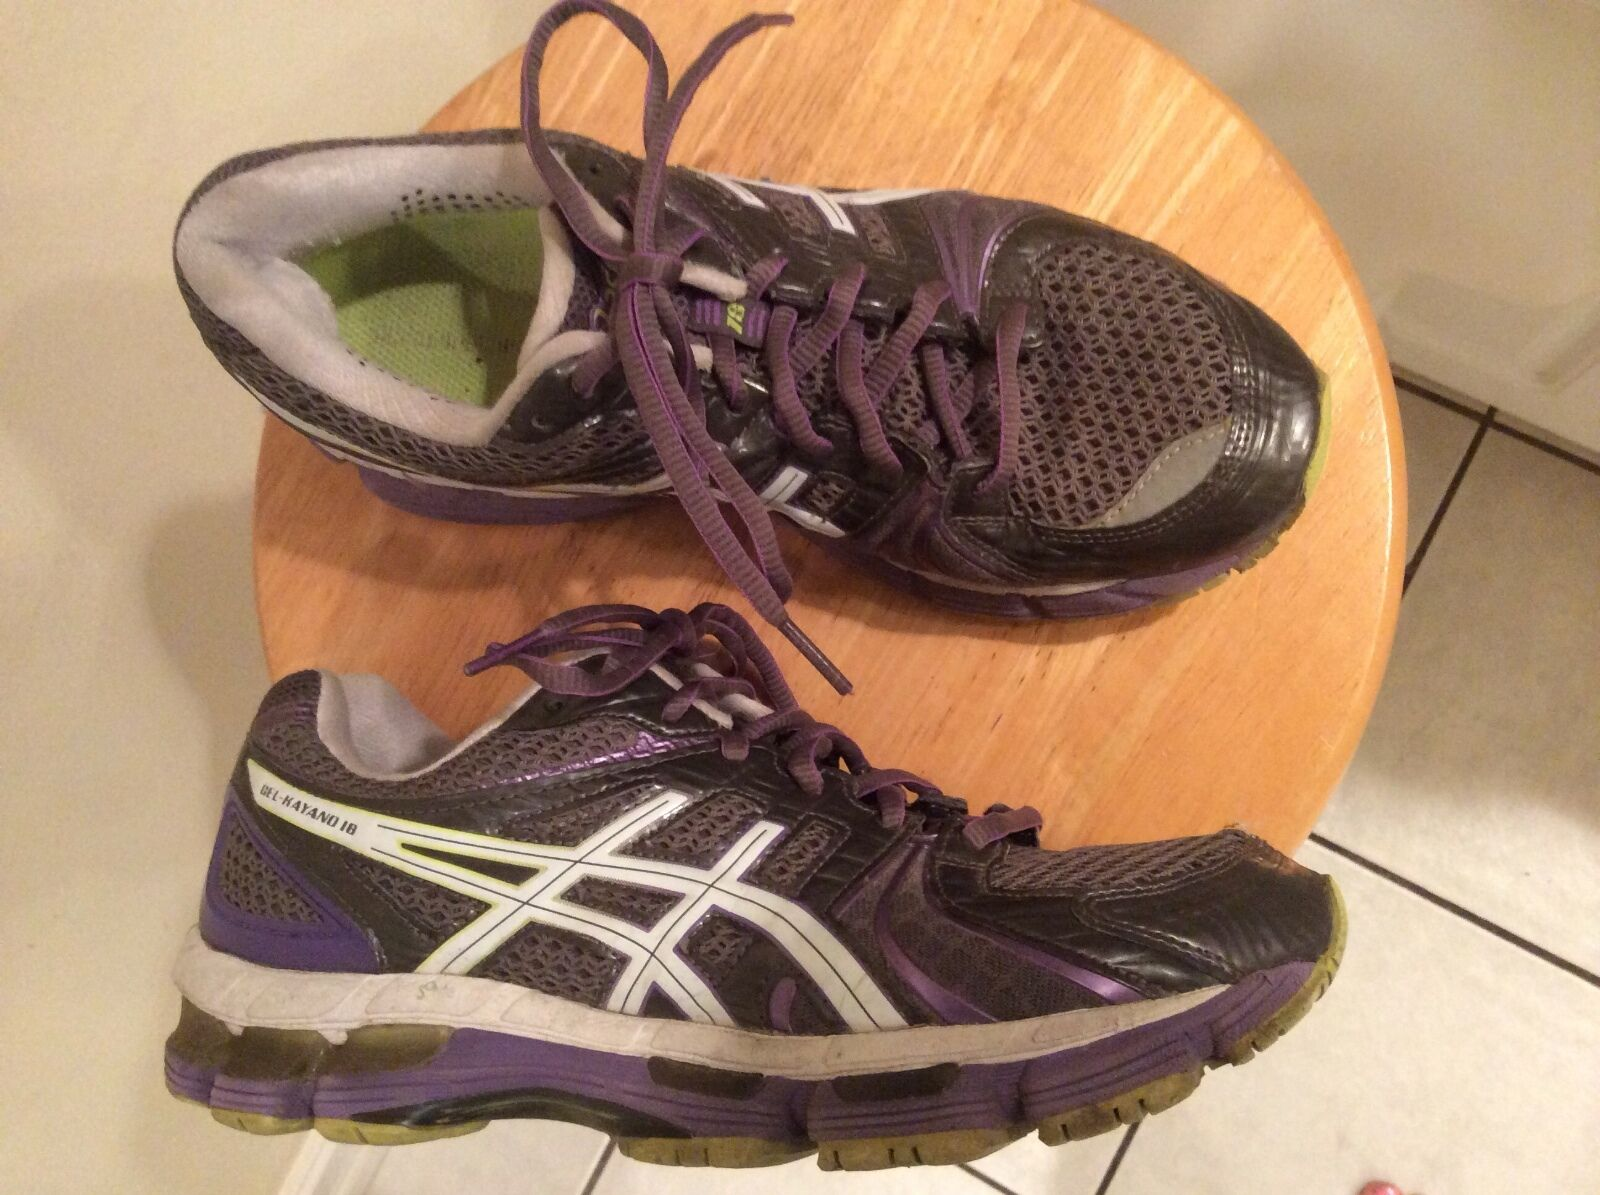 Asics Gel-Kayano 18 Running Shoes MSRP 150Price reduction Comfortable and good-looking